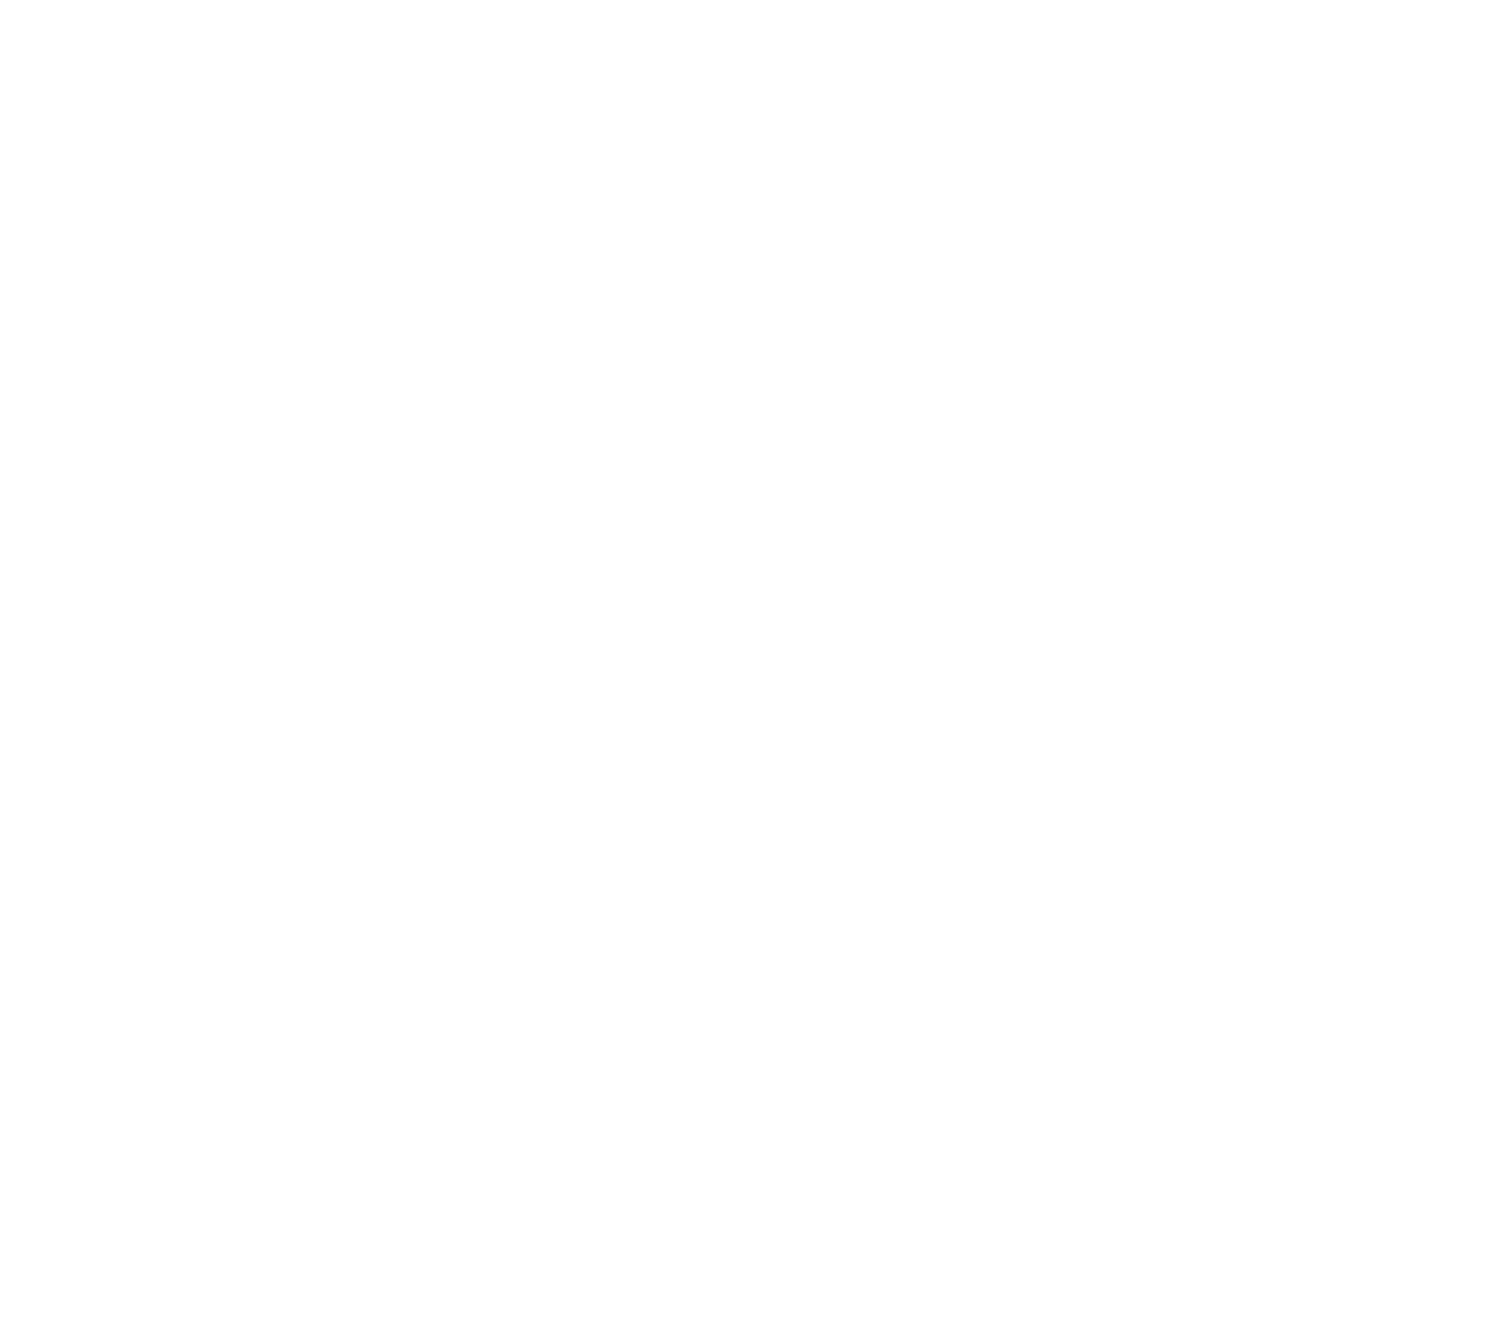 Breast Academy